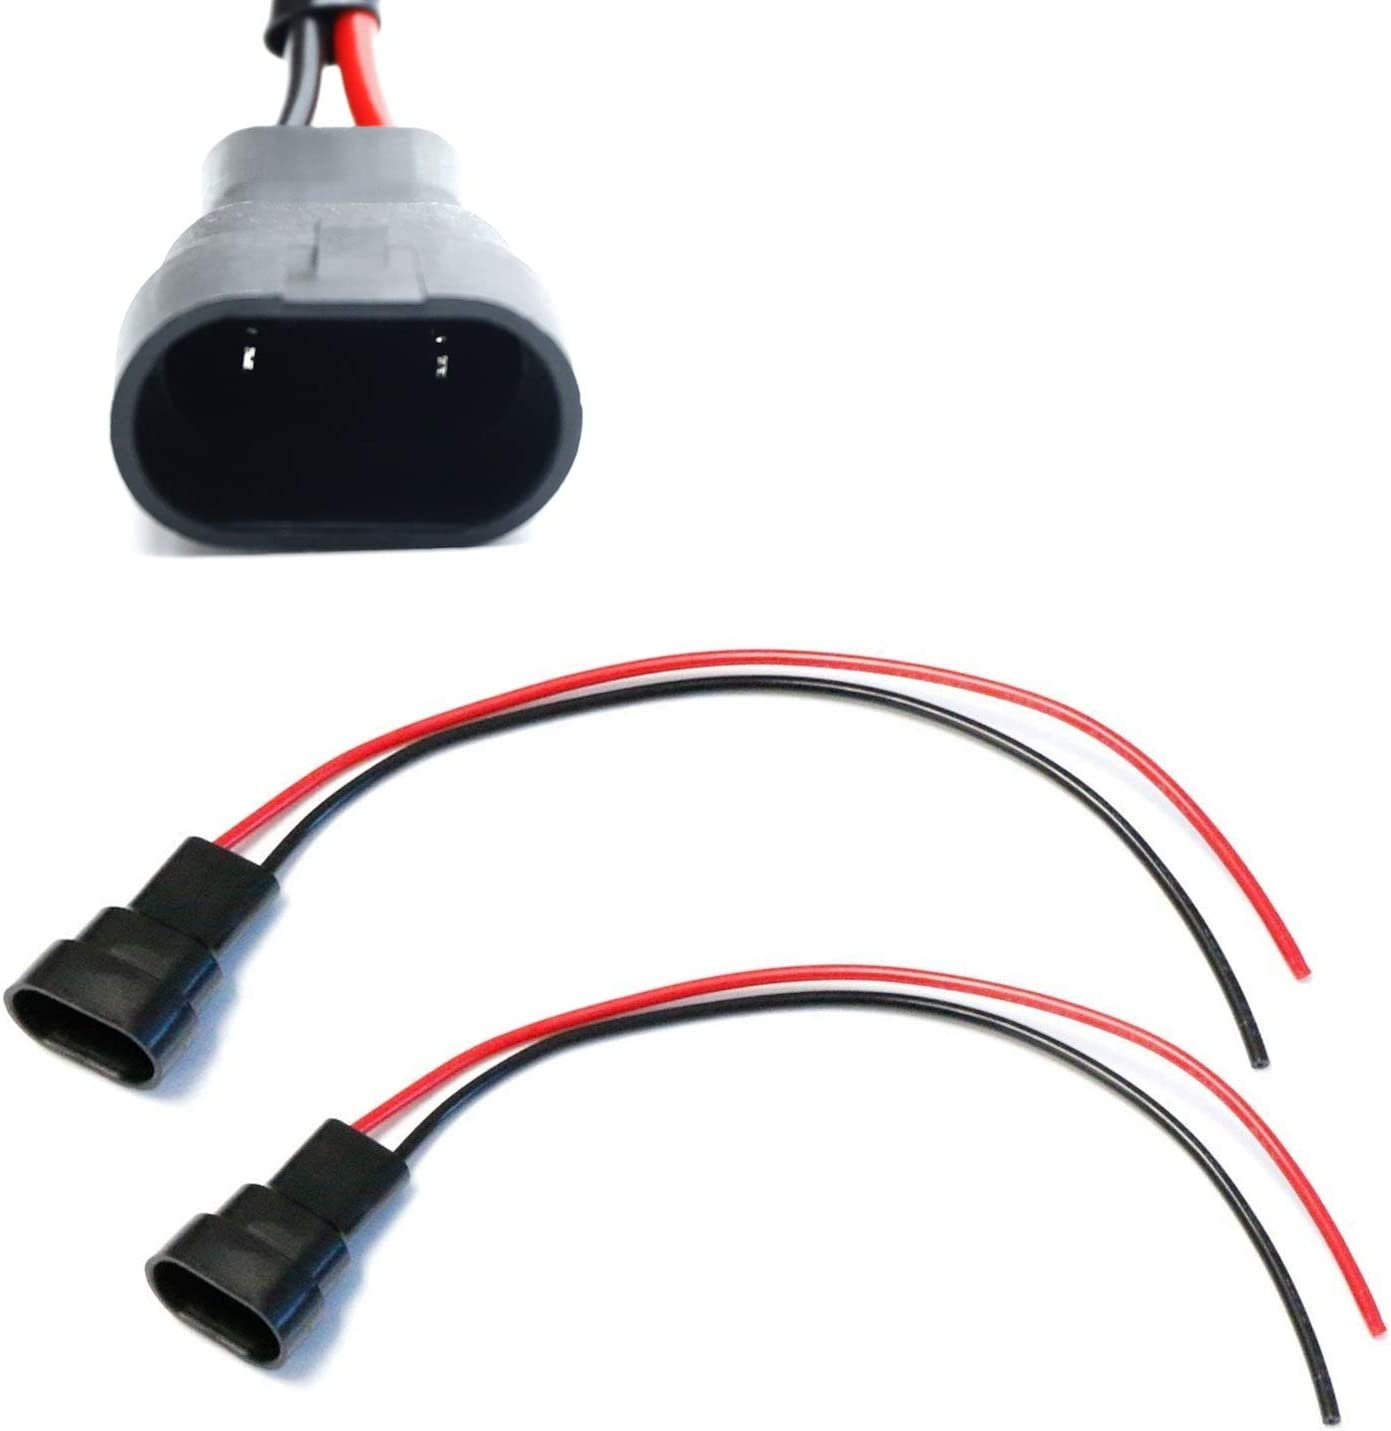 iJDMTOY (2) 9005/9006/H10 Male Adapter Wiring Harness Sockets Wire on protective wire guards for lights, harley neon lights, flash lights, electrical wiring, safety lights, concrete lights, wood lights, wireless remote control for lights, control lights, neon lights, homemade grow lights, silver pendant lights, bulbs lights, product neon lights, ceiling fan wiring, night lights, city of lights, cabinets lights, chicken wire christmas lights, recessed lights, switch lights, mason jar lights, chicken wire balls with lights, holiday lights, switch wiring, diy solar lights, oversized pendant lights, building lights, hot tub wiring, roof lights,